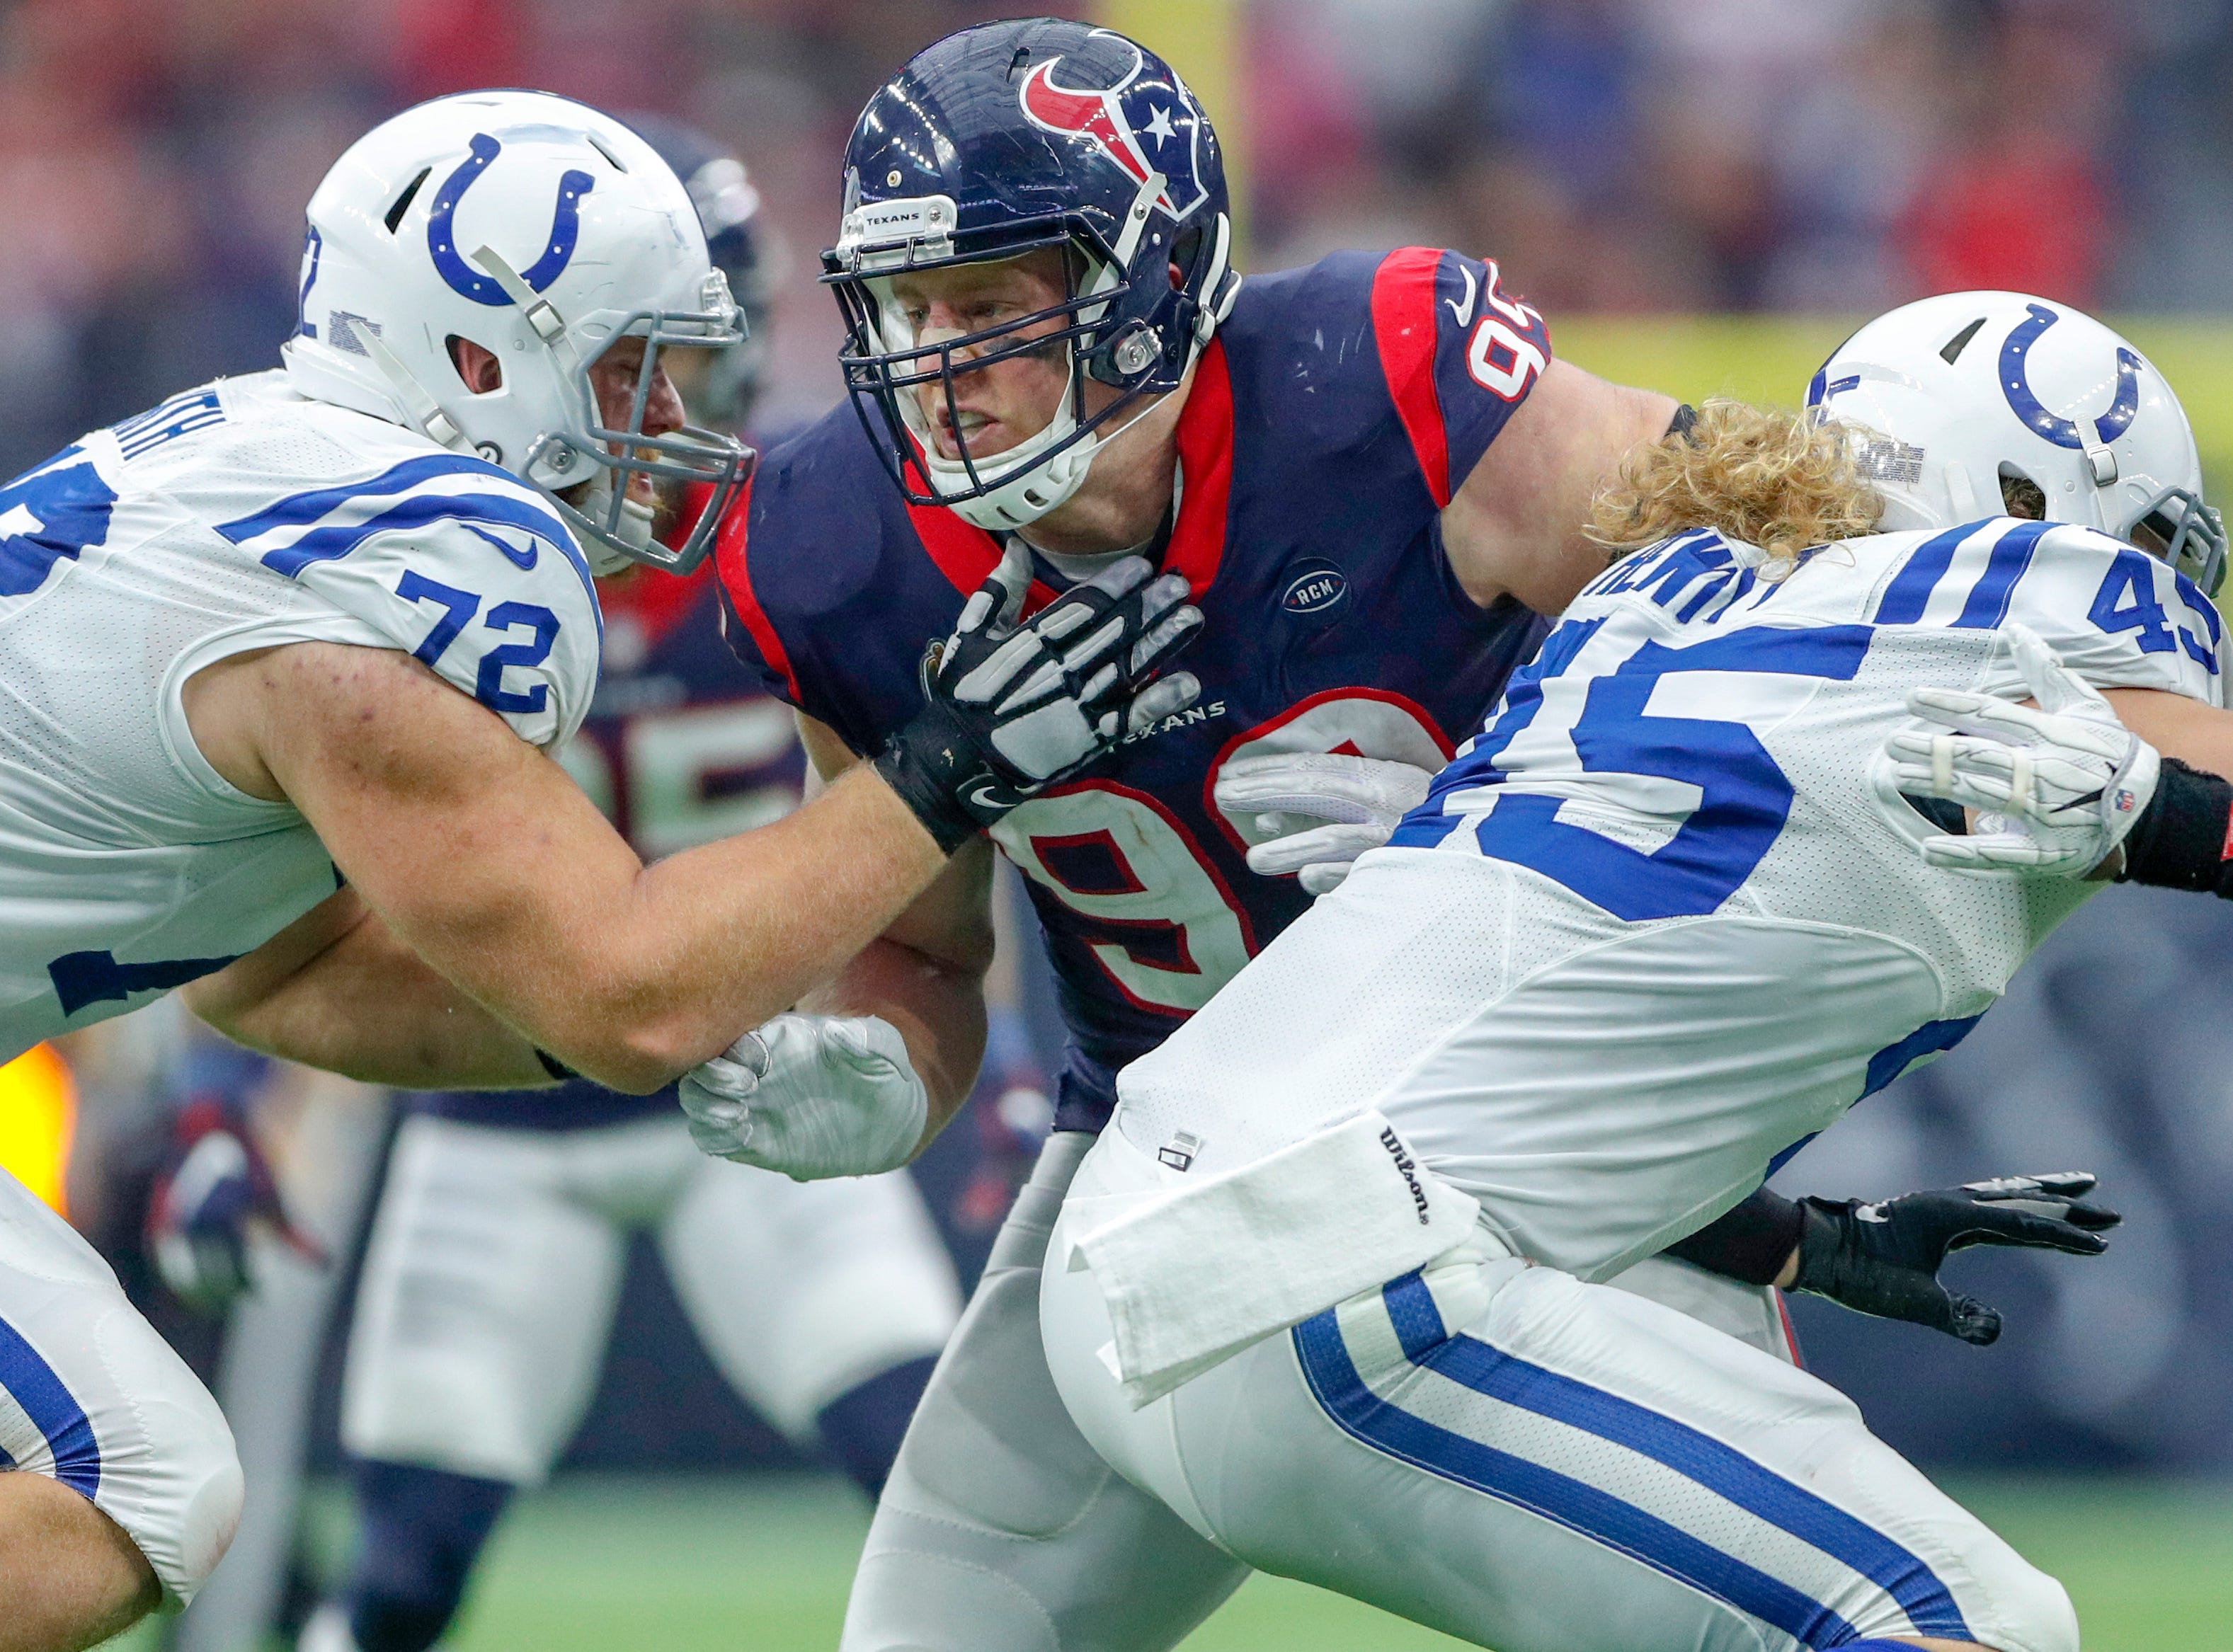 Houston Texans defensive end J.J. Watt (99) works against Indianapolis Colts offensive tackle Braden Smith (72) in the fourth quarter at NRG Stadium in Houston on Sunday, Dec. 9, 2018.